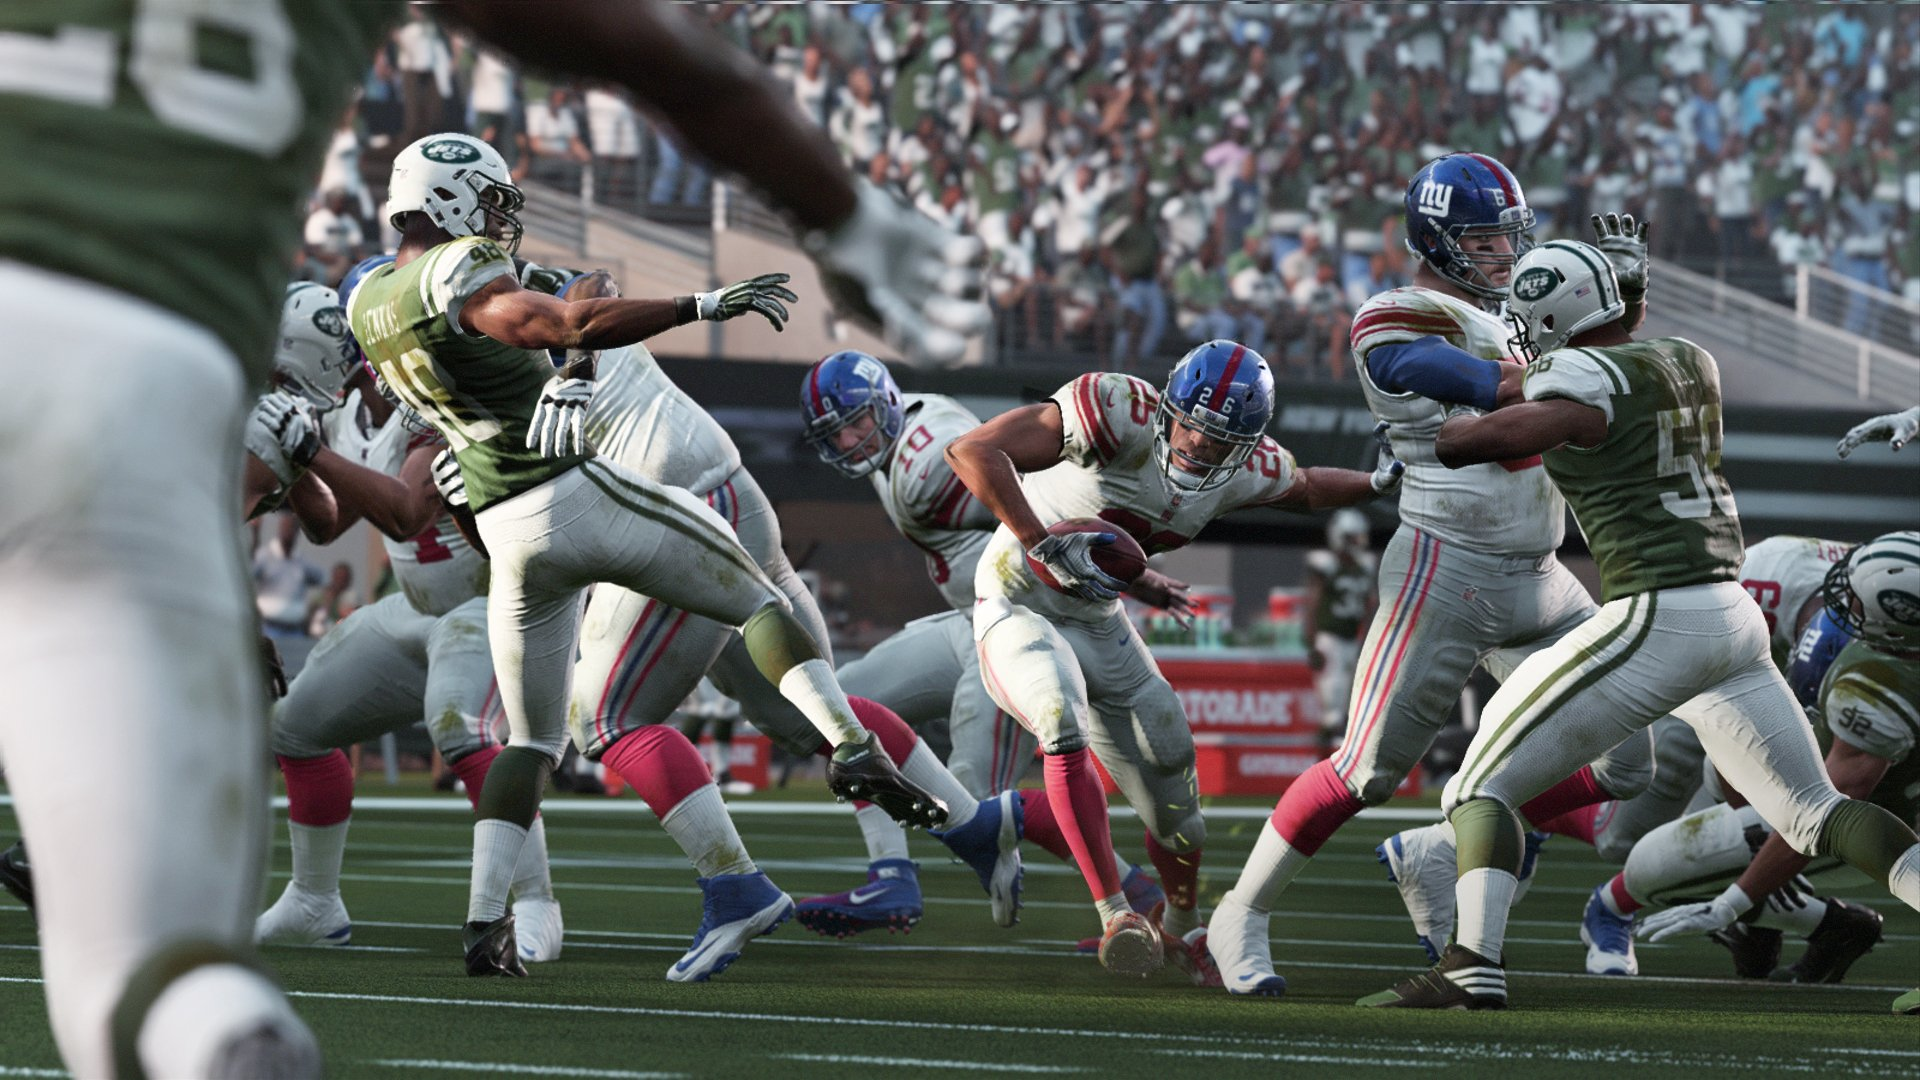 Madden NFL 19: Hall of Fame Edition - Xbox One by Electronic Arts (Image #5)